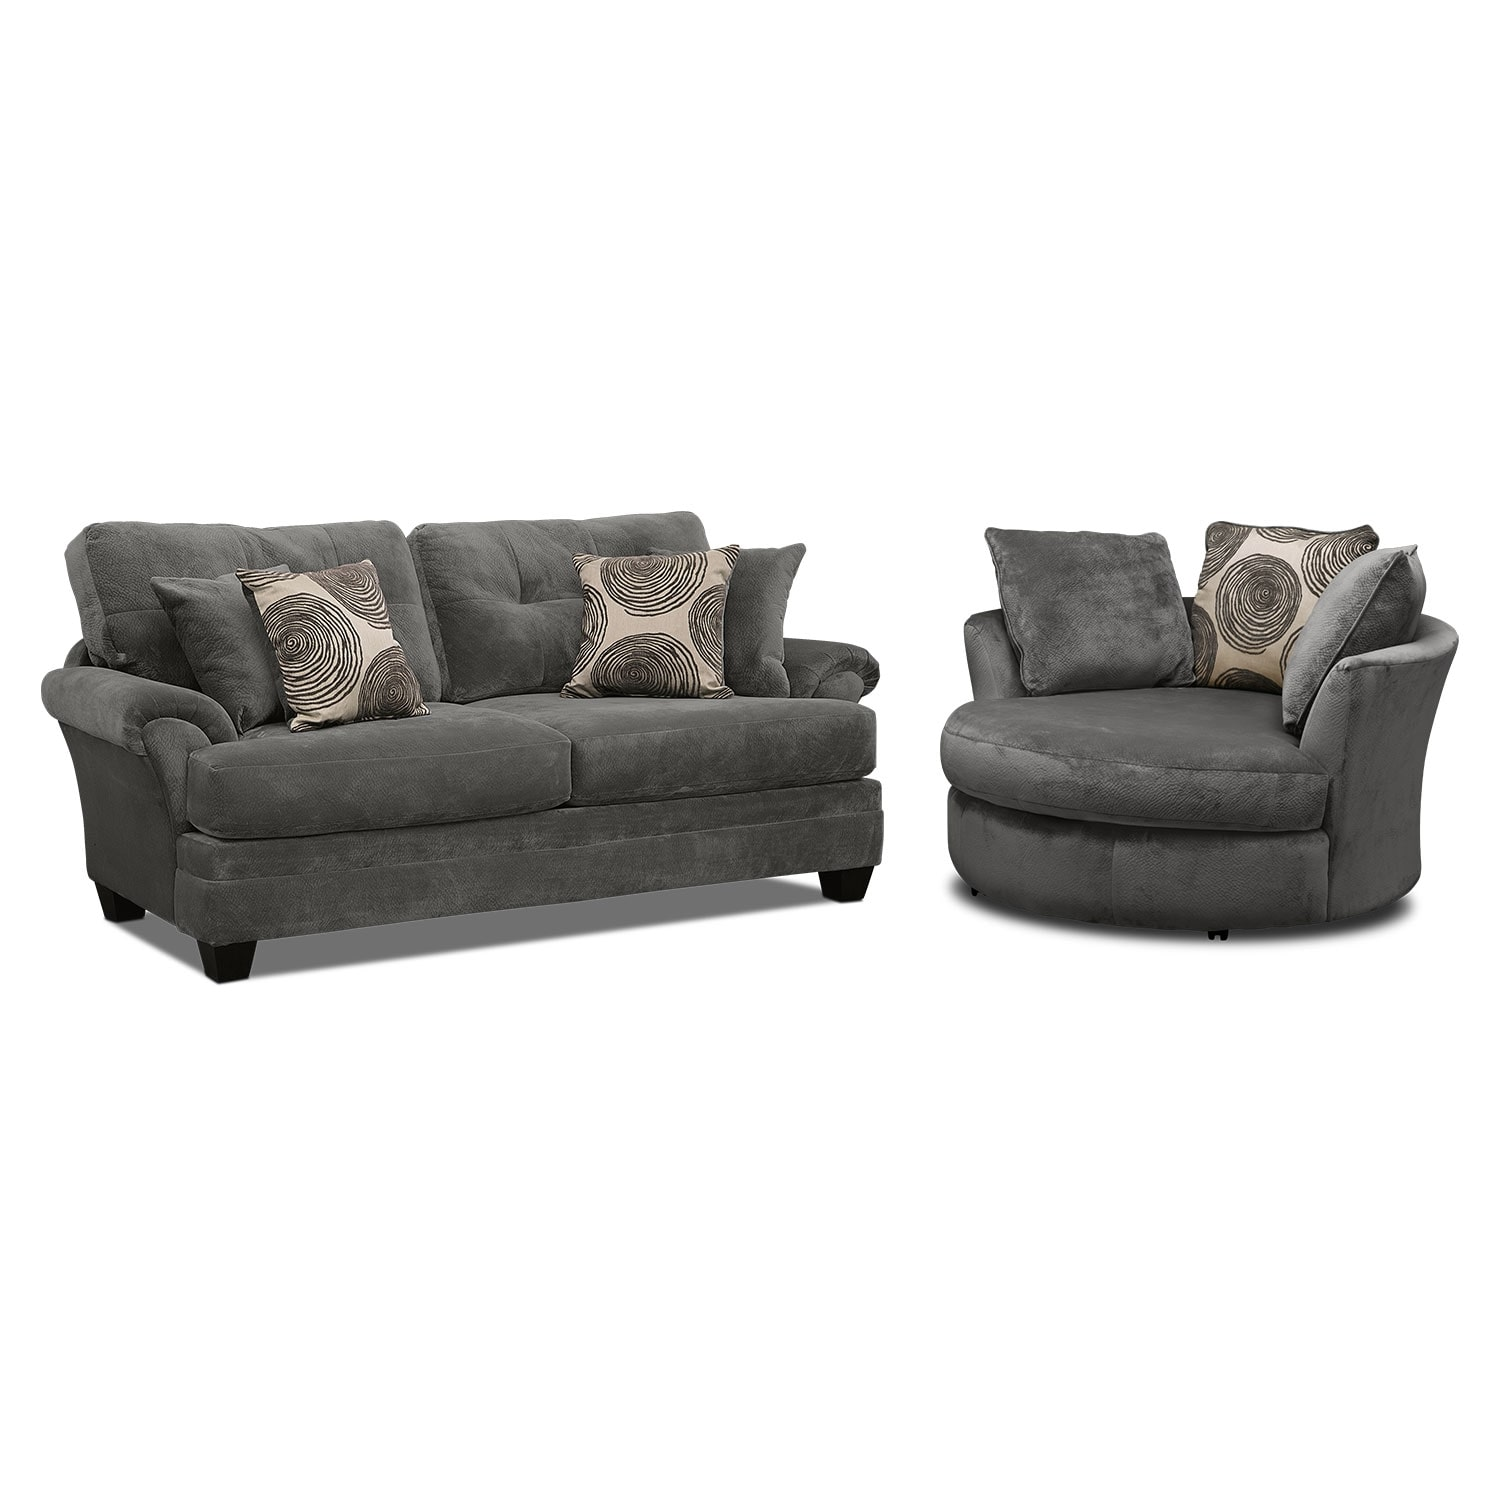 Cordelle Sofa and Swivel Chair Set - Gray | American Signature Furniture